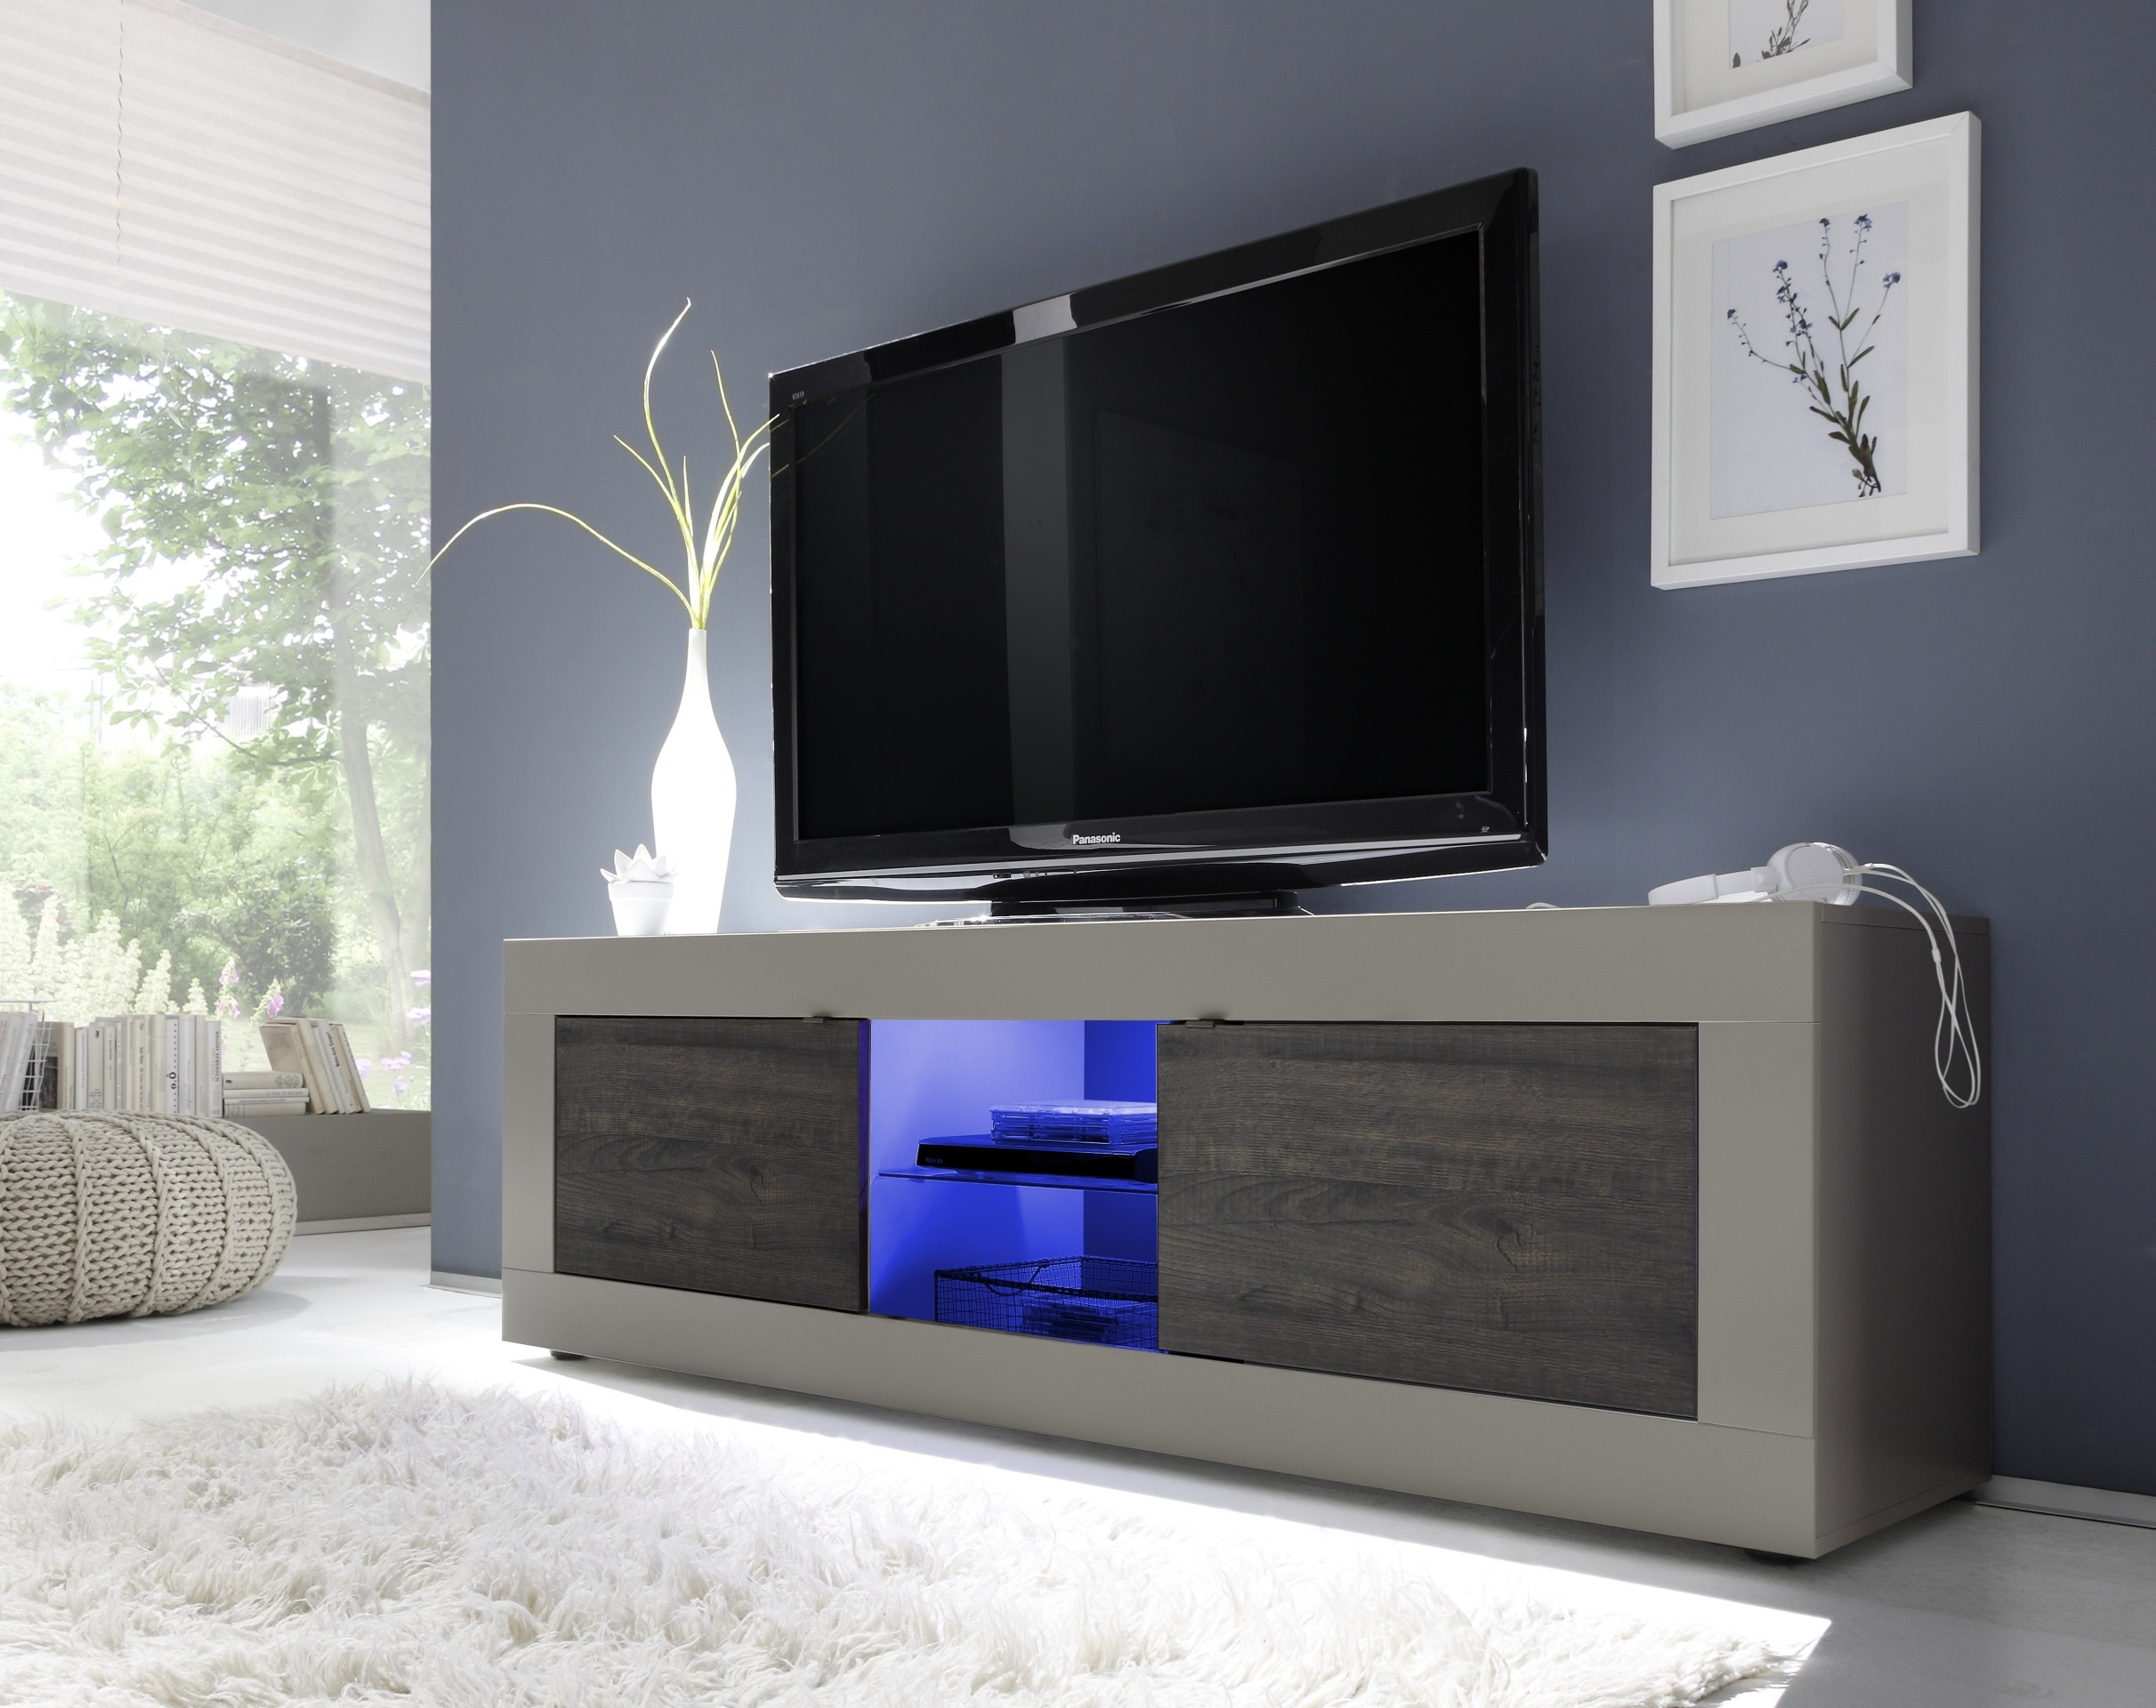 Dolcevita II Modern TV Stand In Matt Finish Stands